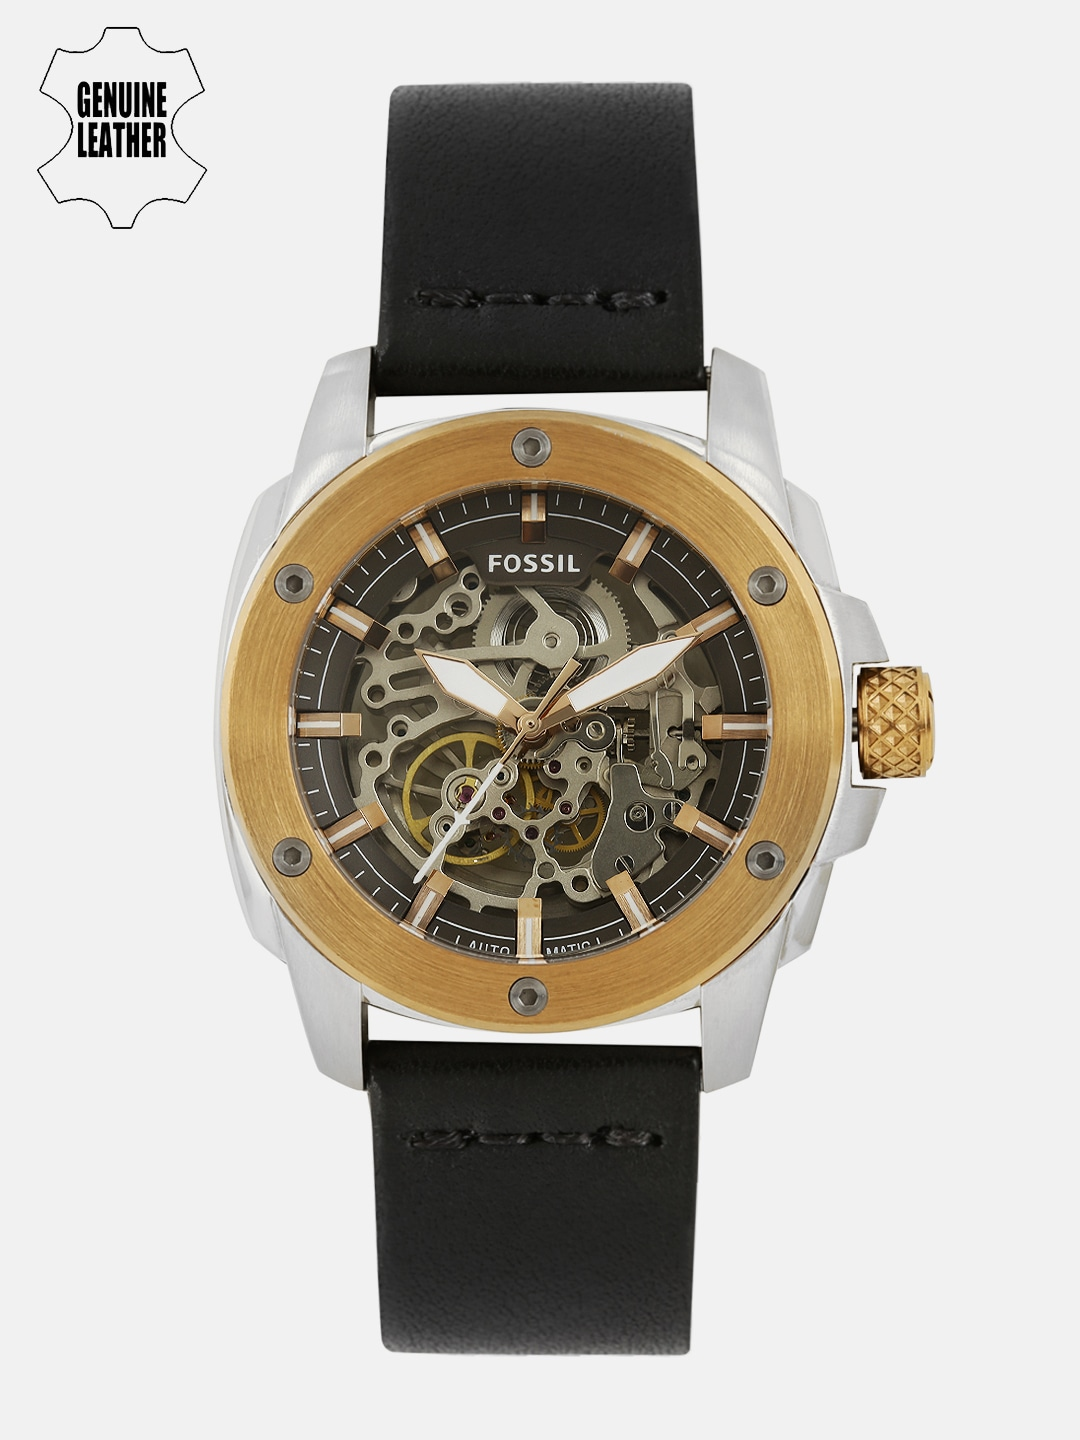 Fossil Men Analogue Watch 18 November 2018 Price In India